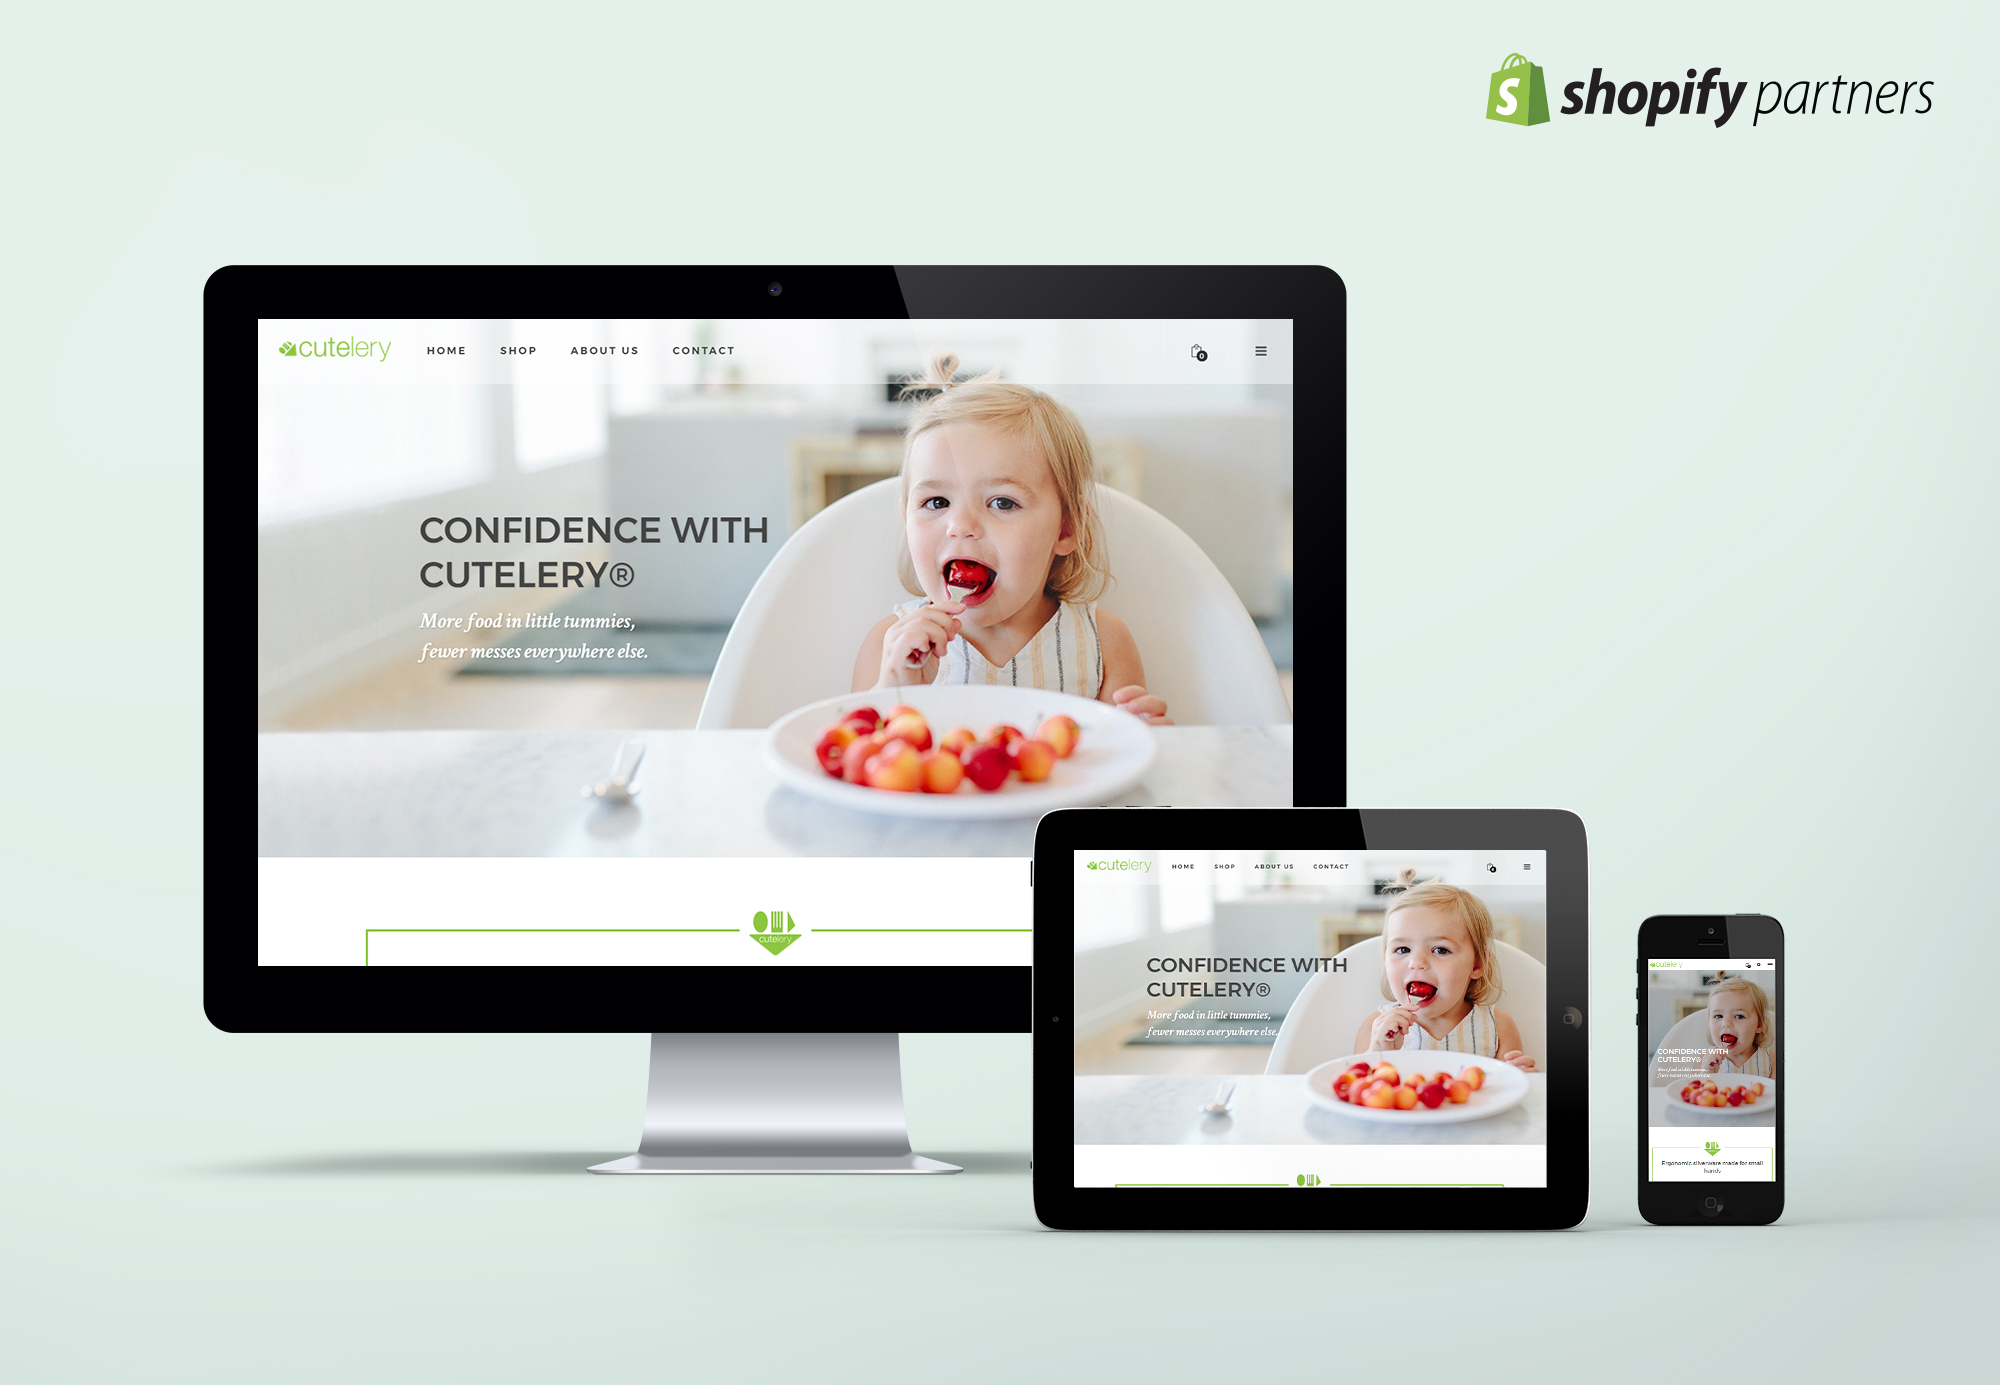 Cutelery 1: website is responsive and mobile-friendly